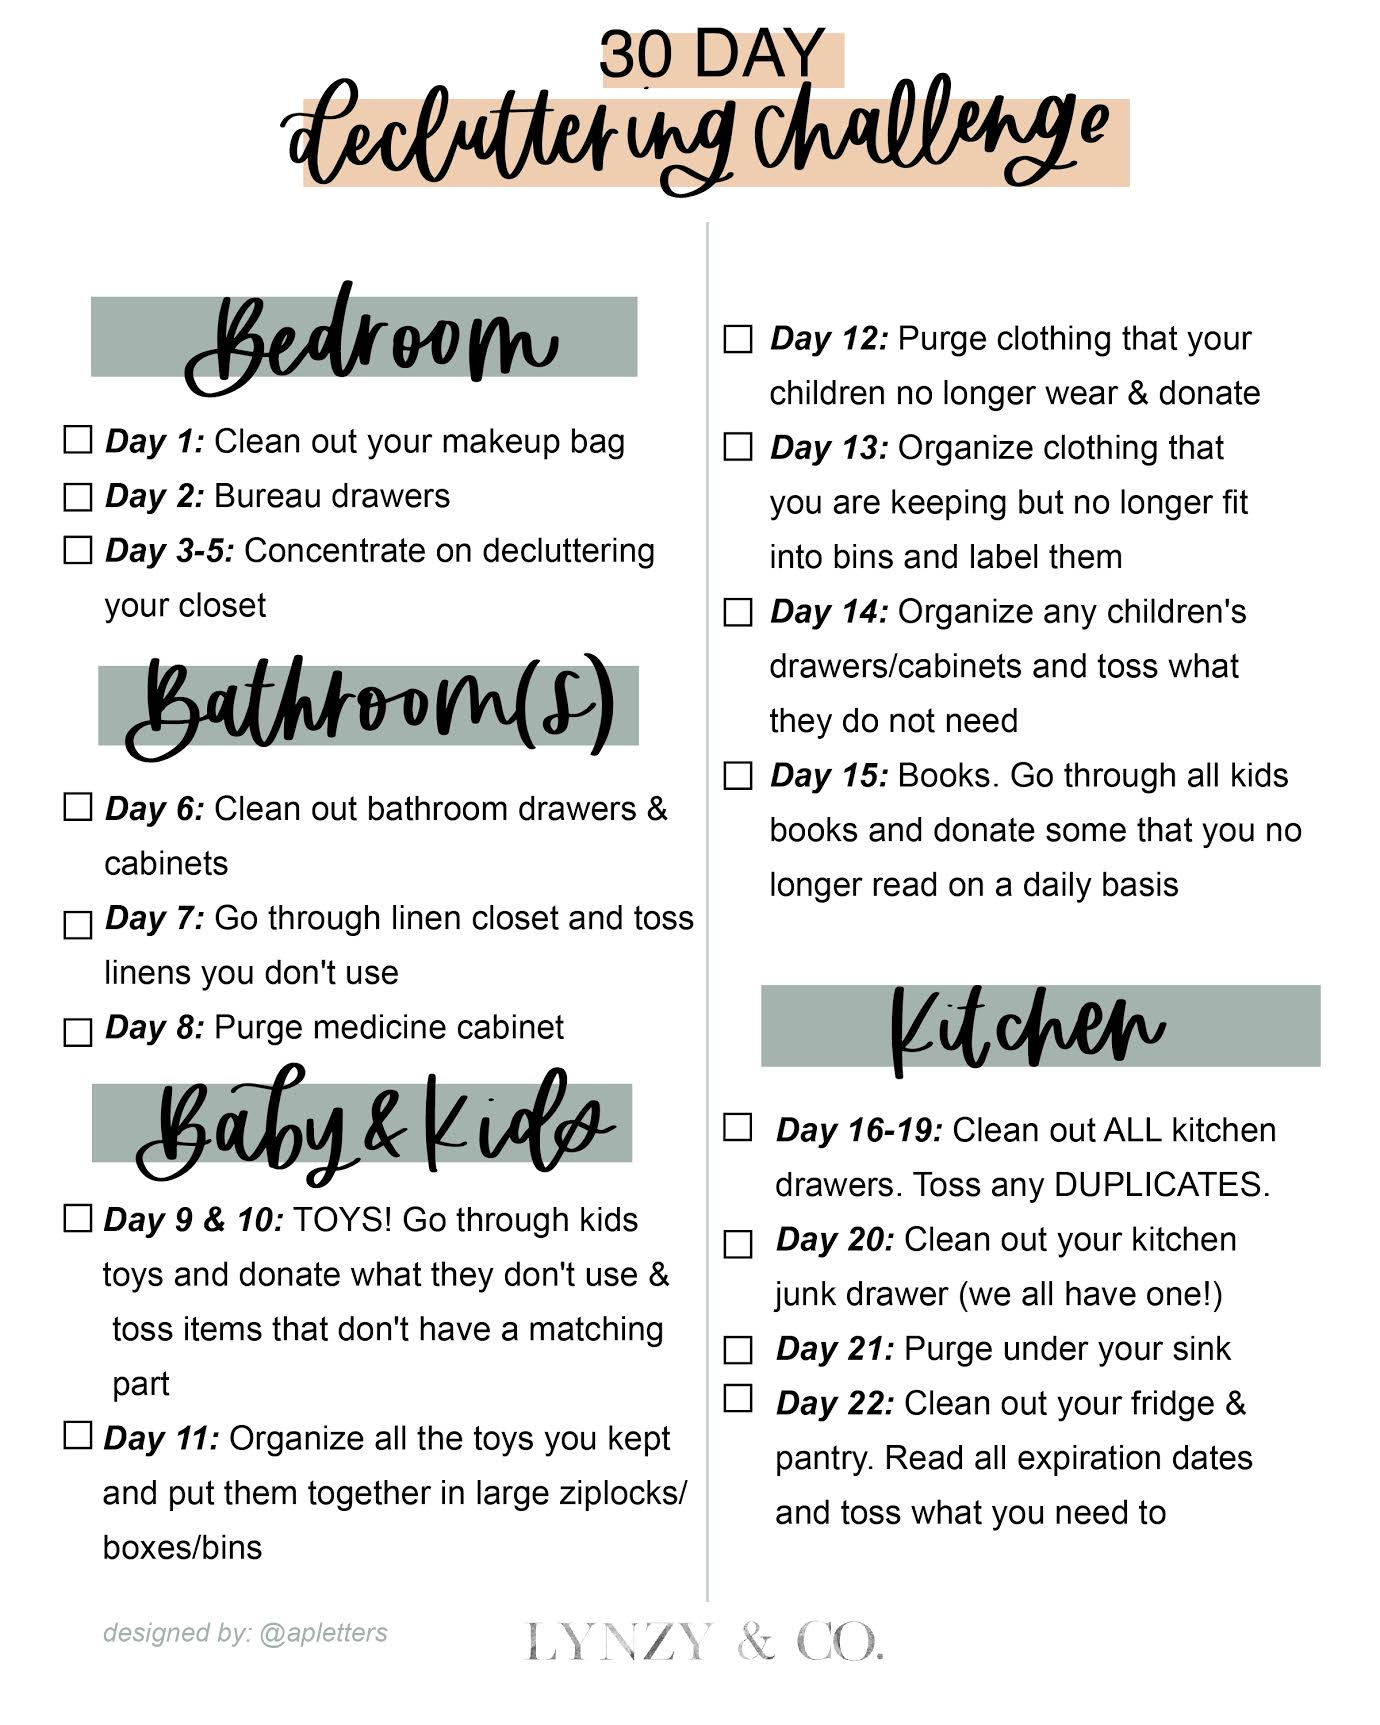 30 Day Decluttering Challenge & Printable – Lynzy & Co. throughout 30 Day Declutter Calendar